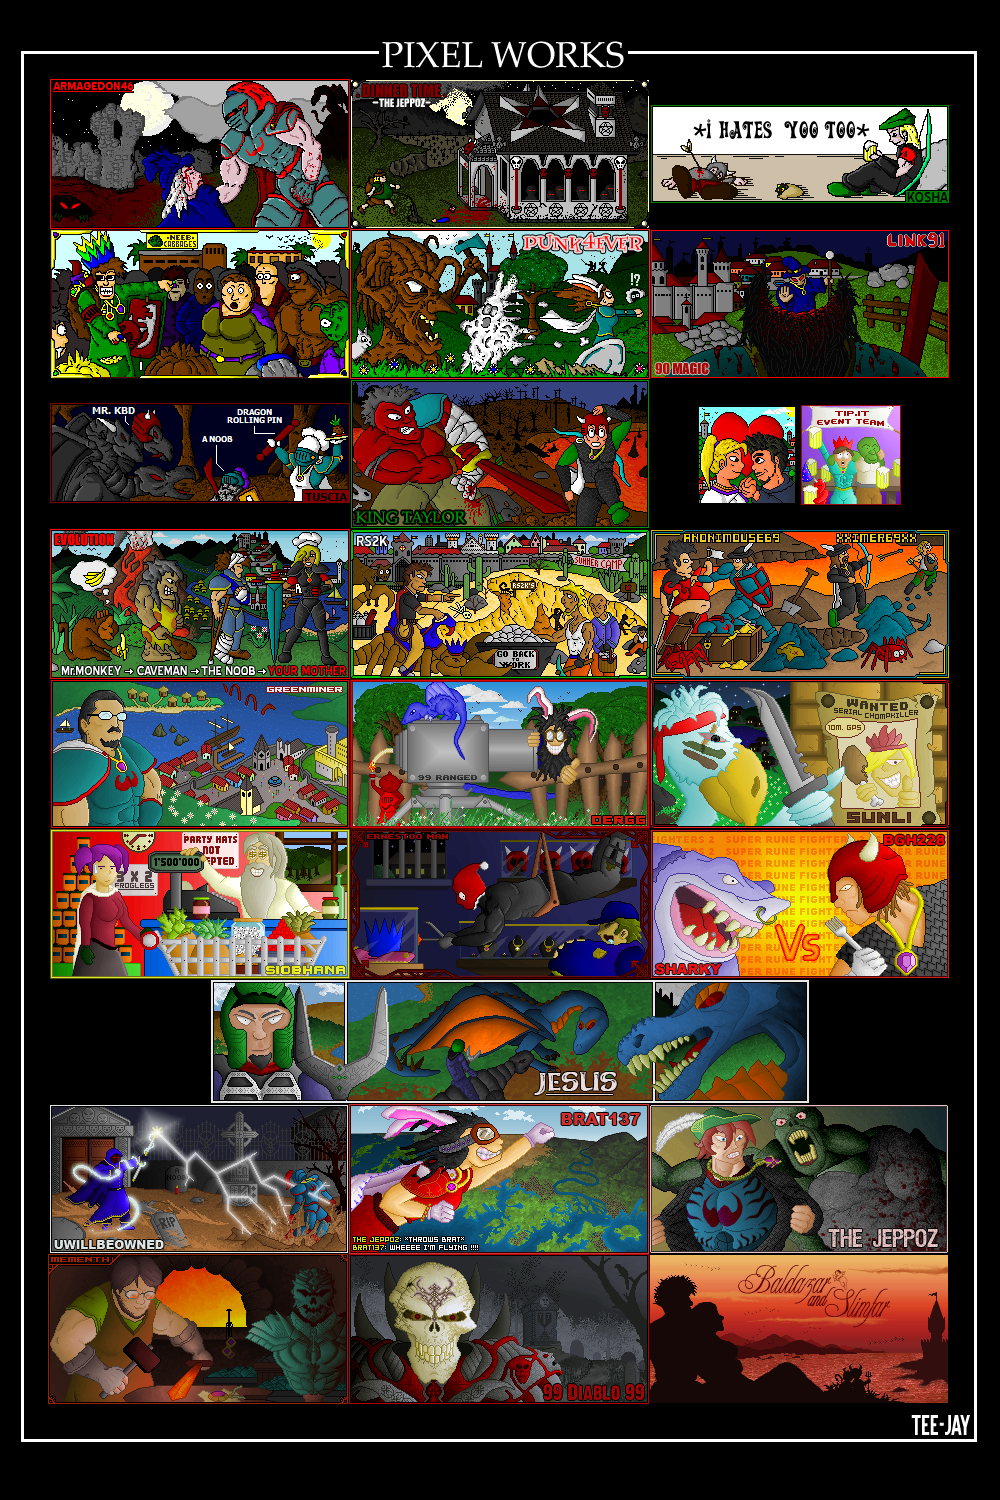 Pixel_Works_by_Tee_Jay.png